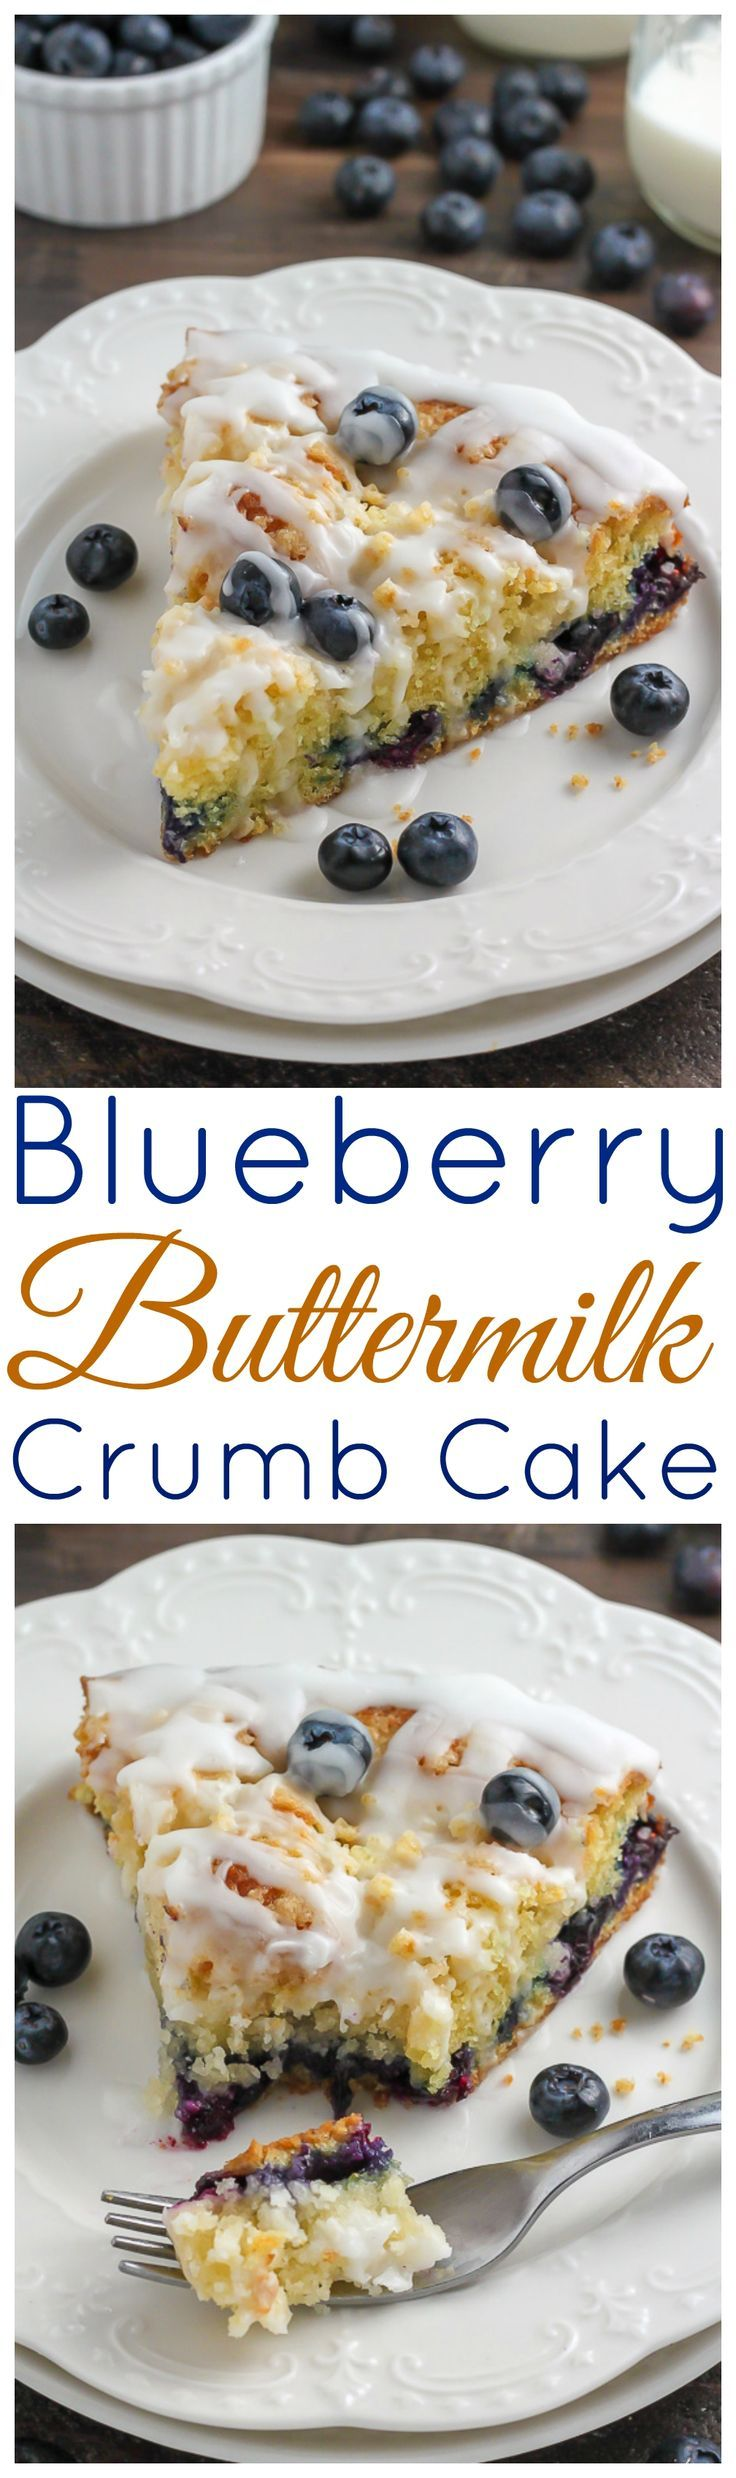 ... images about Blueberry Desserts | Blueberry Sweets | Blueberries